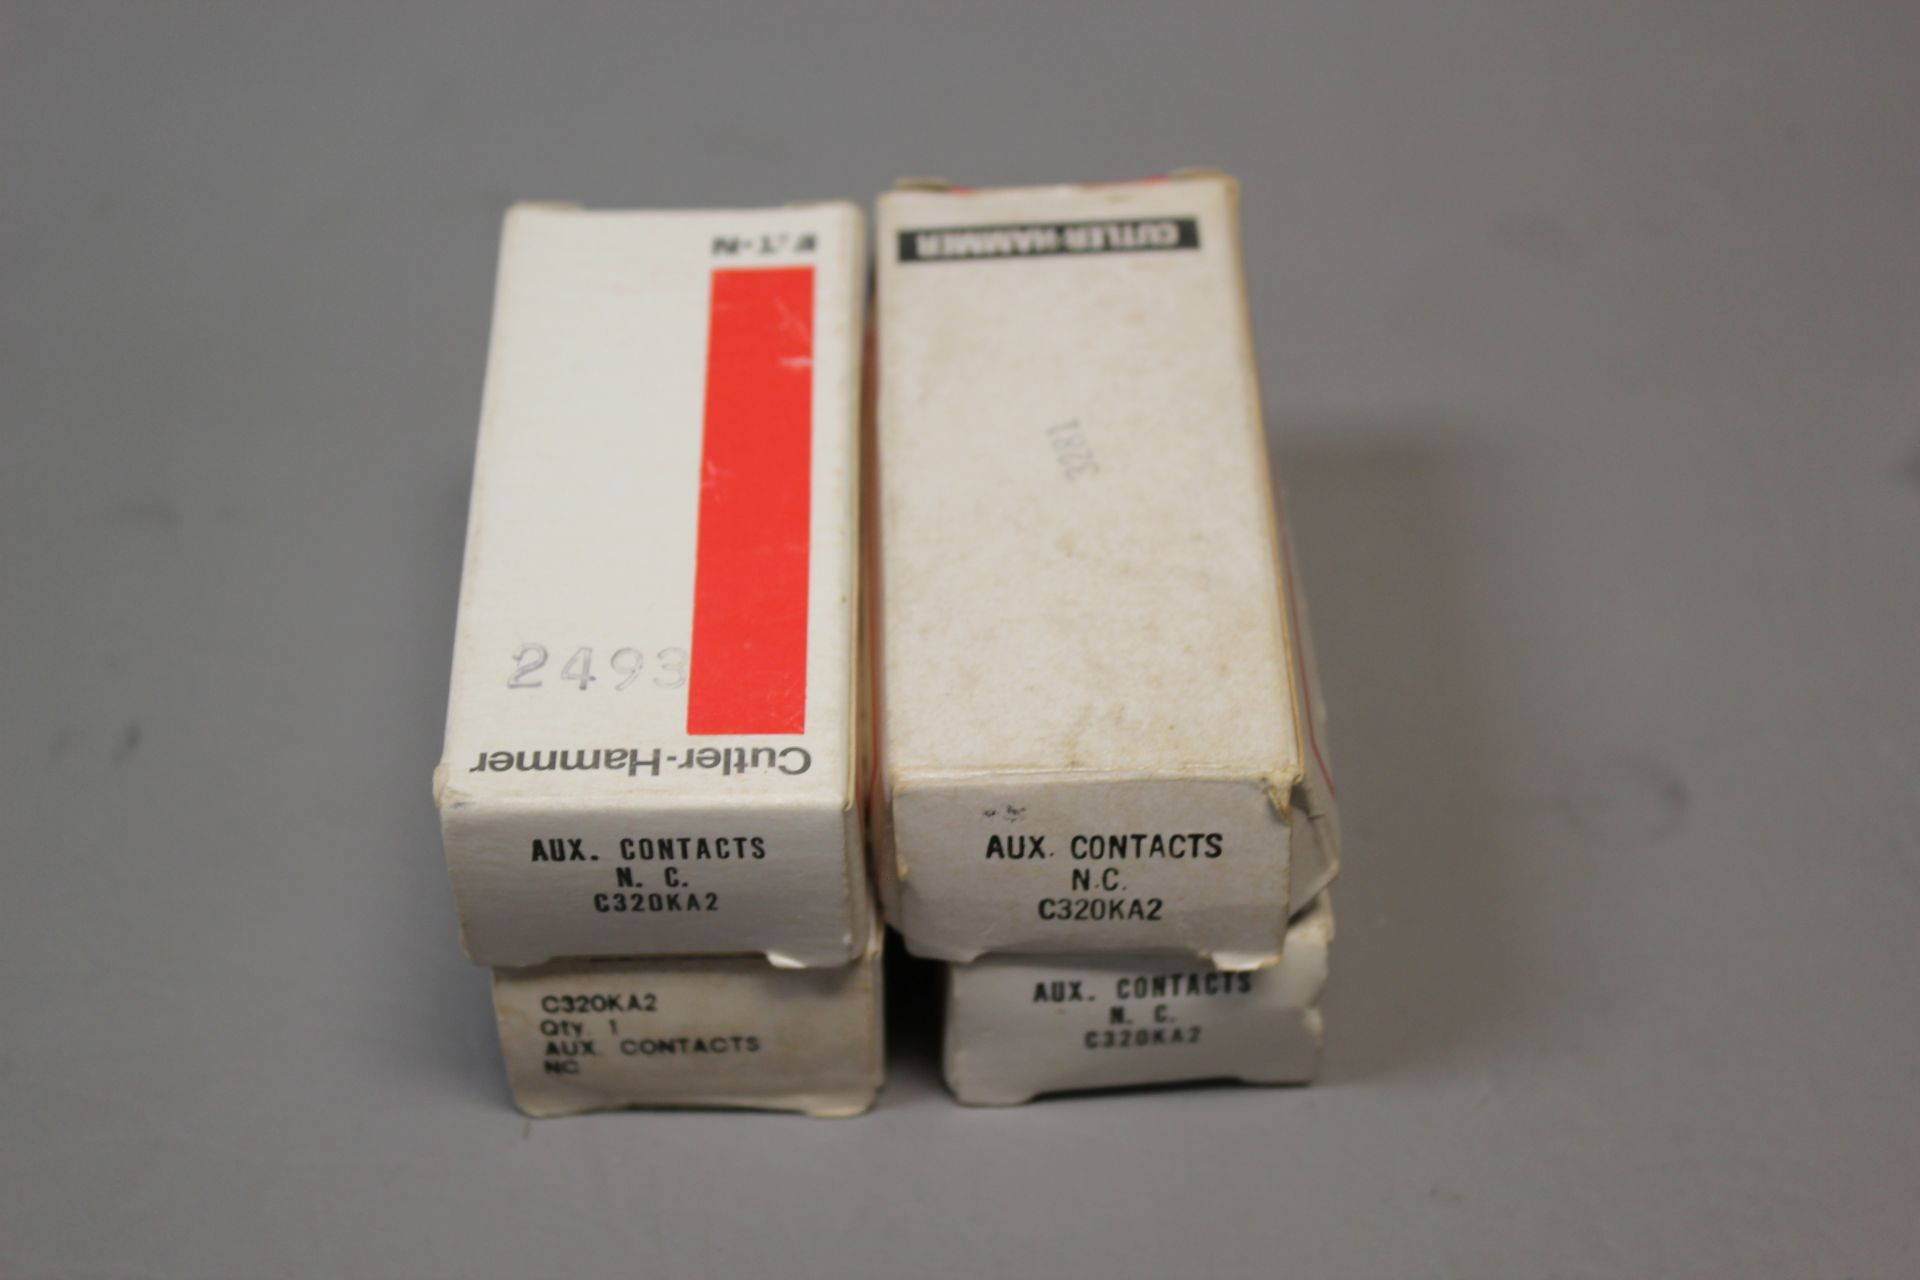 LOT OF NEW CUTLER HAMMER AUXILIARY CONTACTS